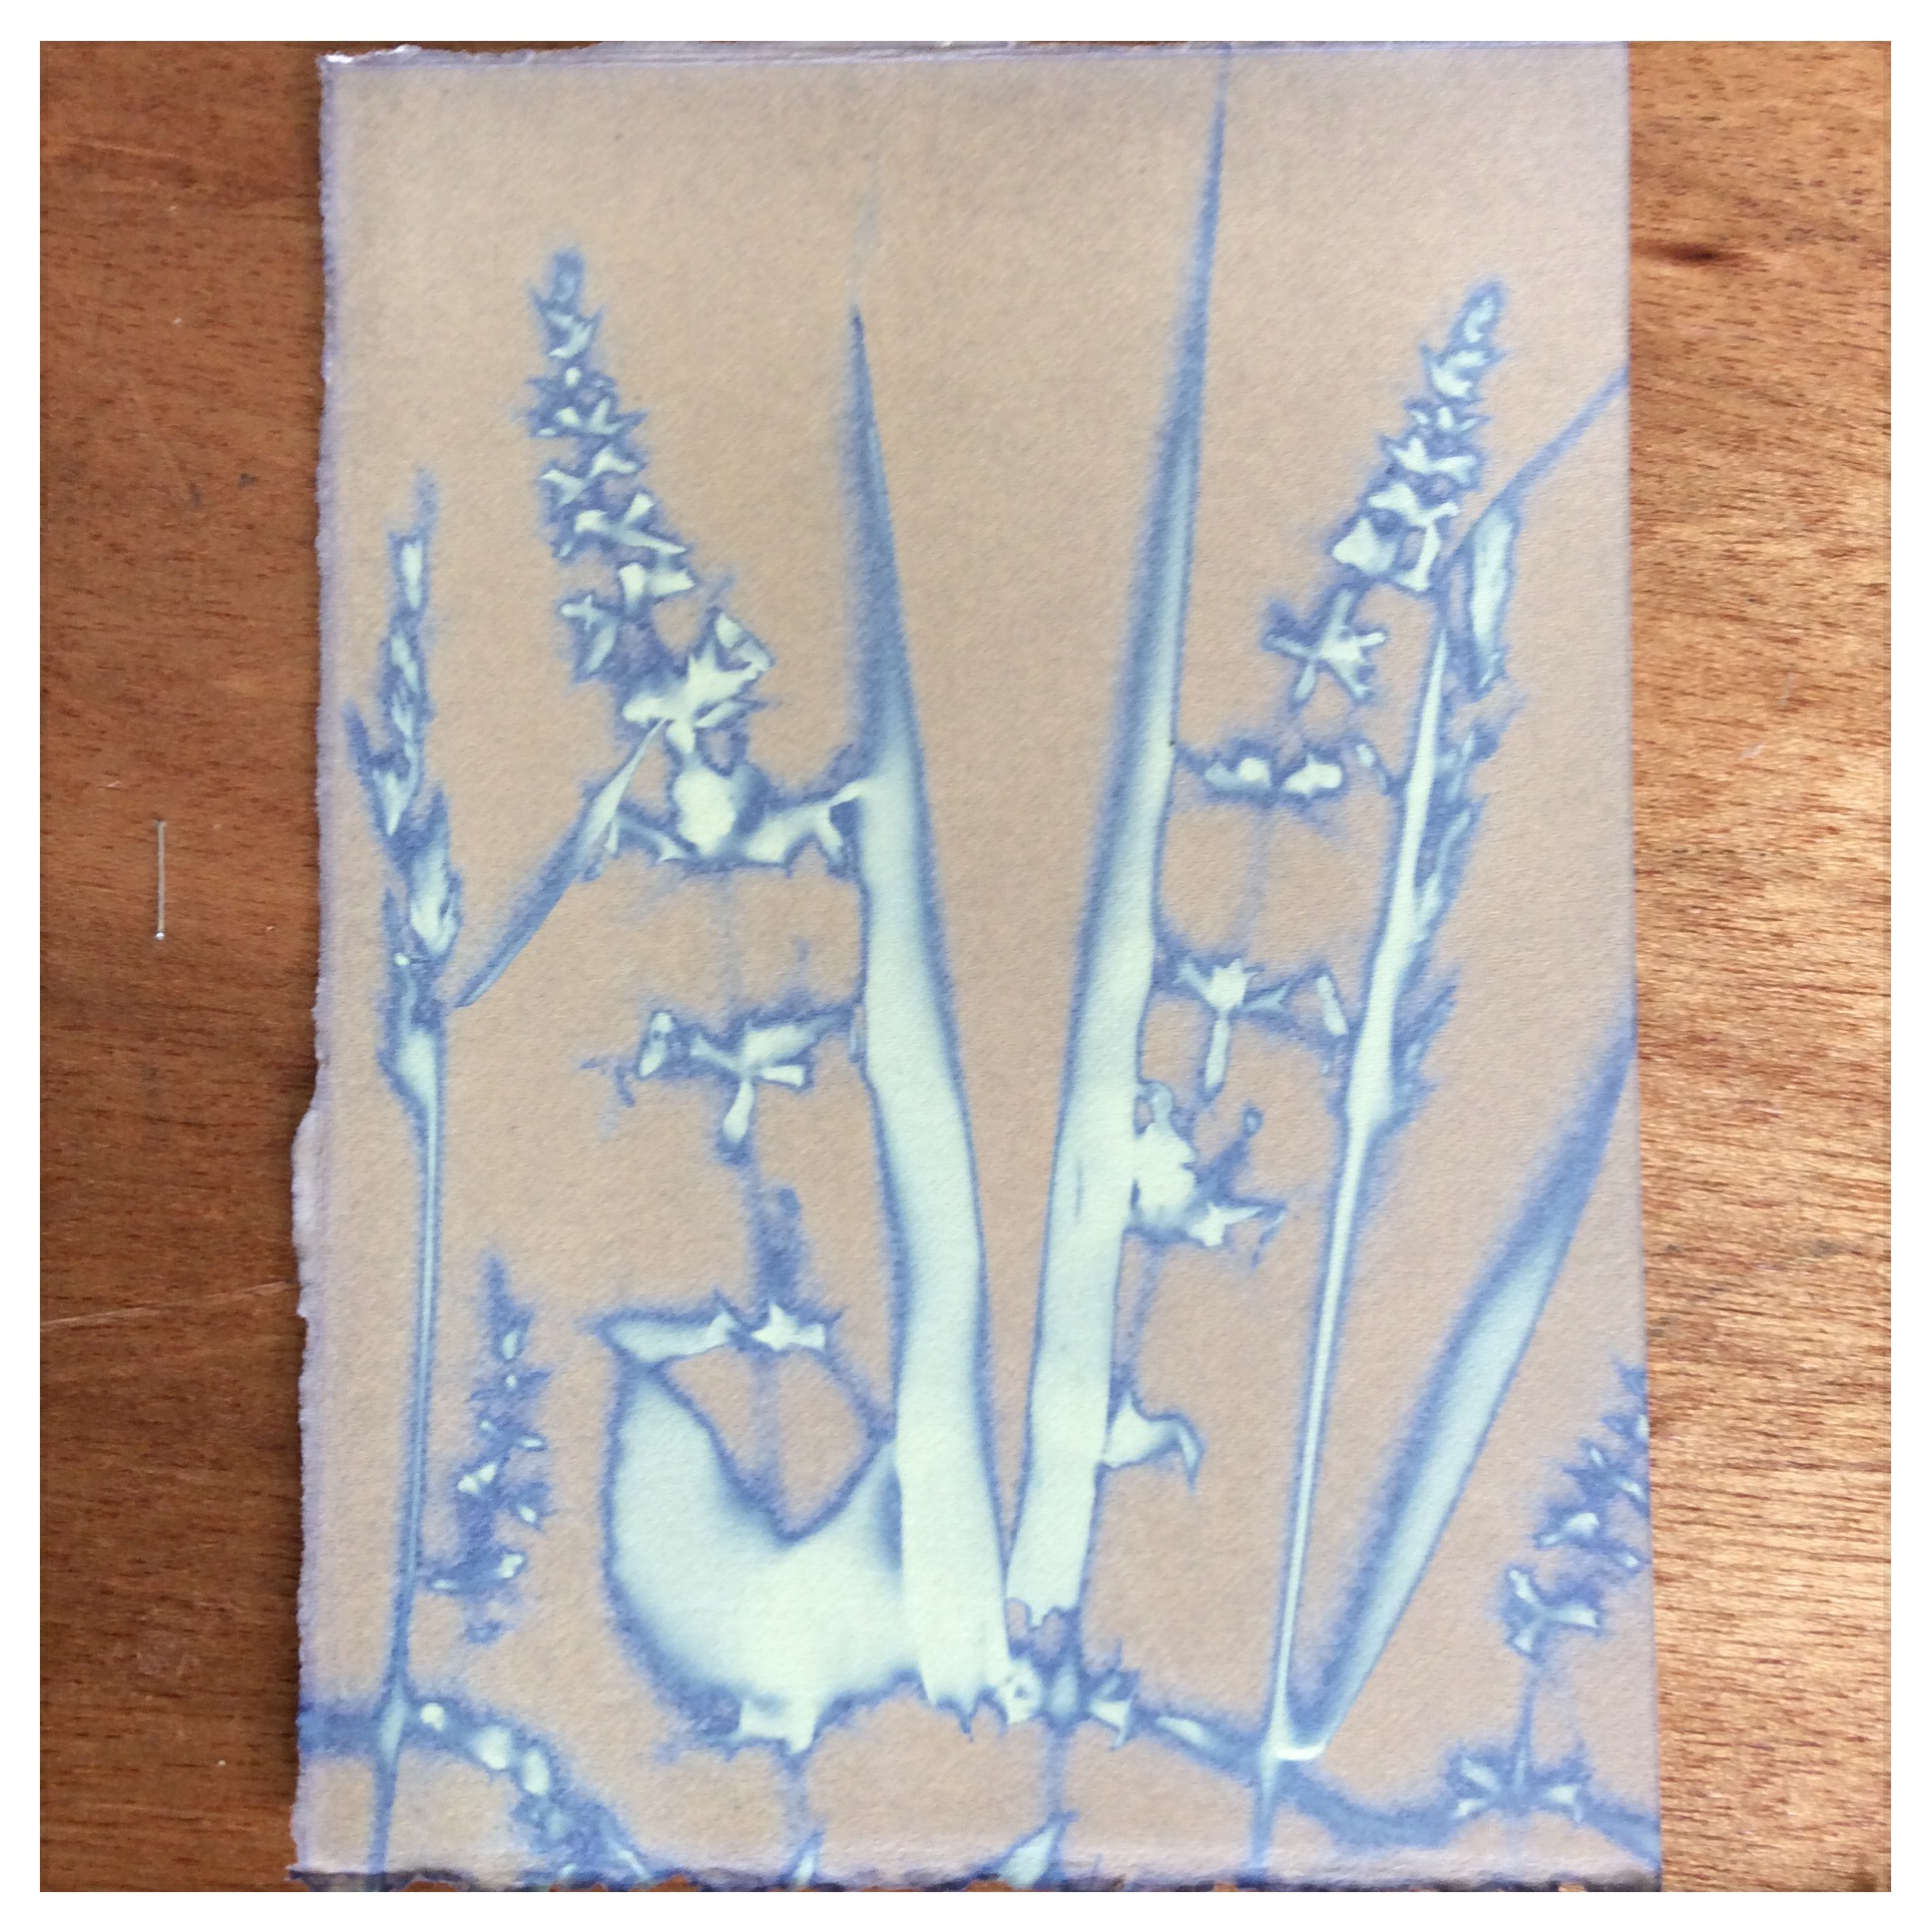 Delicate, Victorian influenced Blueprint, just prior to washing. Student work from Humble by Nature, July.